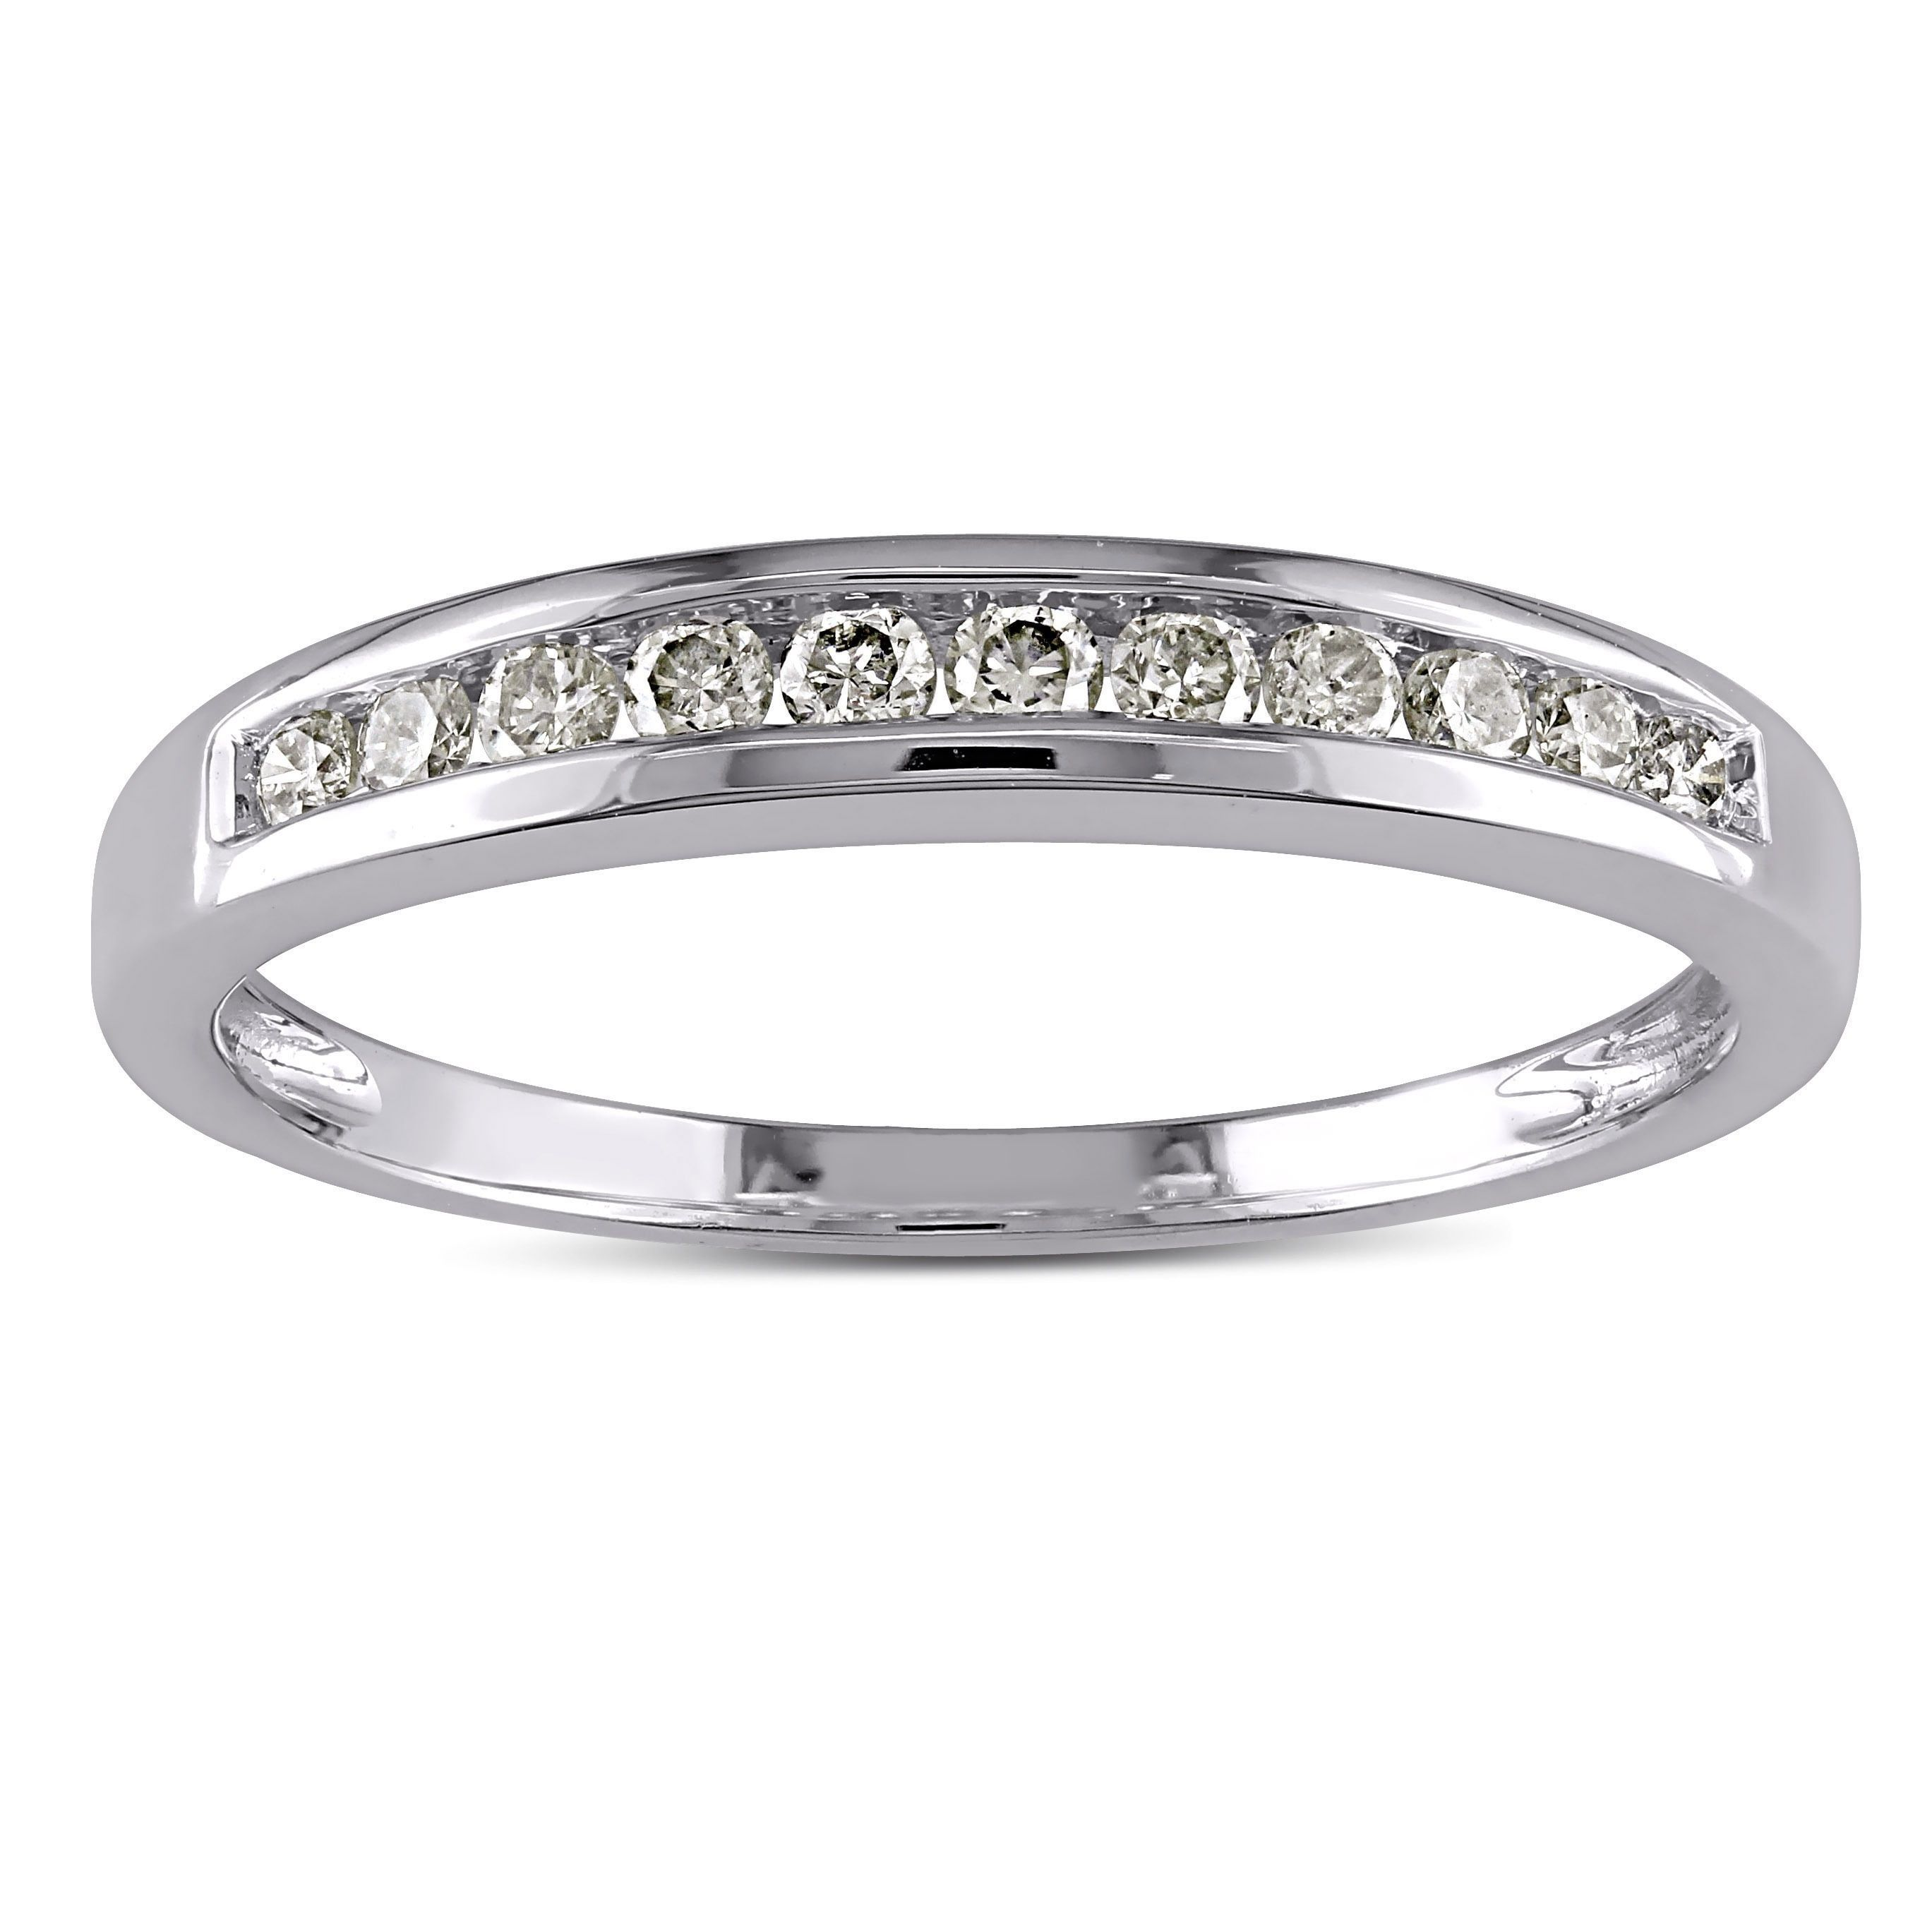 prong diamond set band also collection of awesome rings com channel wedding anniversary atdisability bands vs